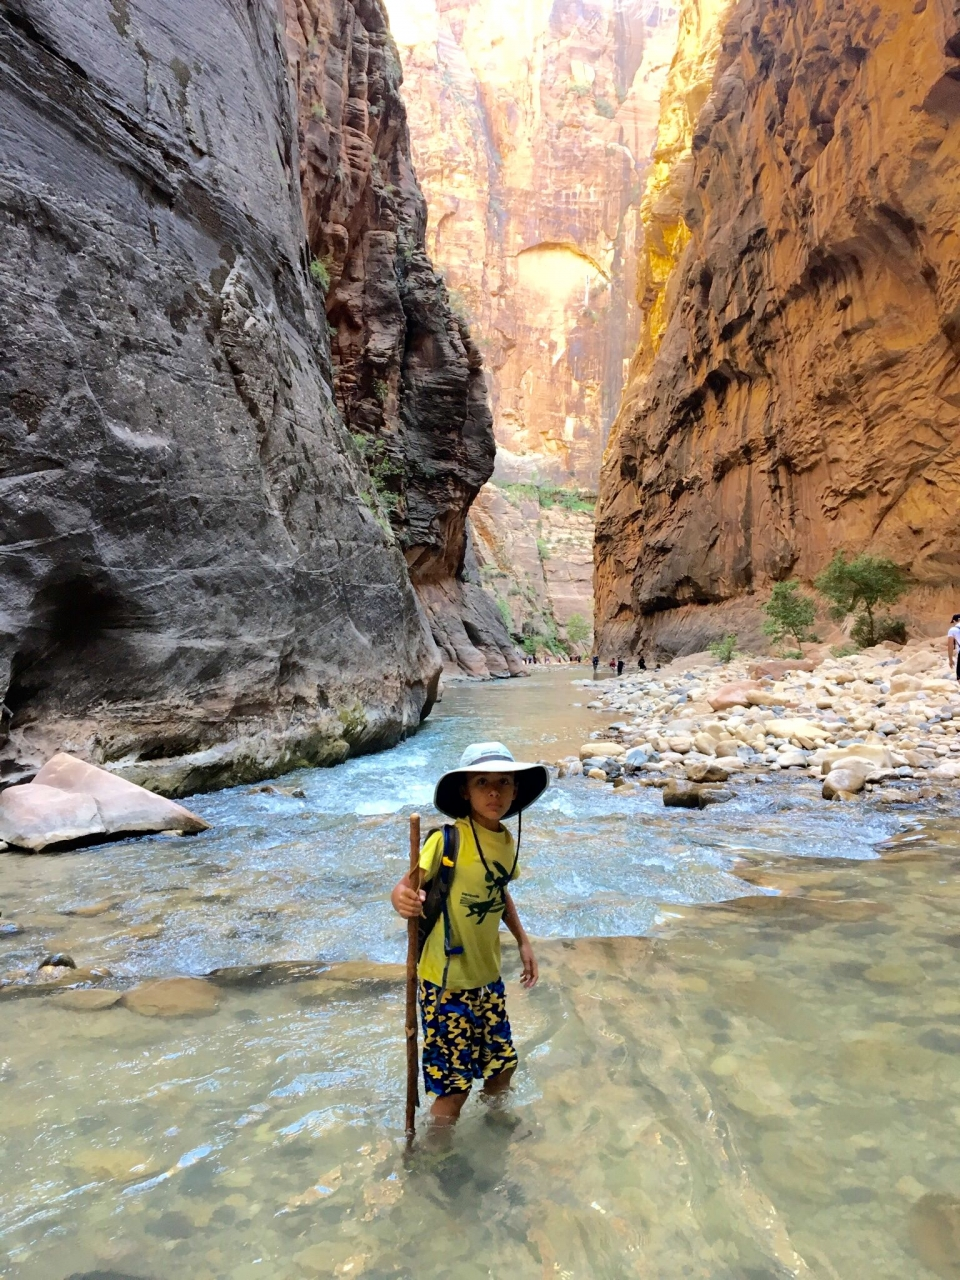 Boy hiking with a stick through a river running between towering red sandstone cliffs of a canyon at Zion National Park